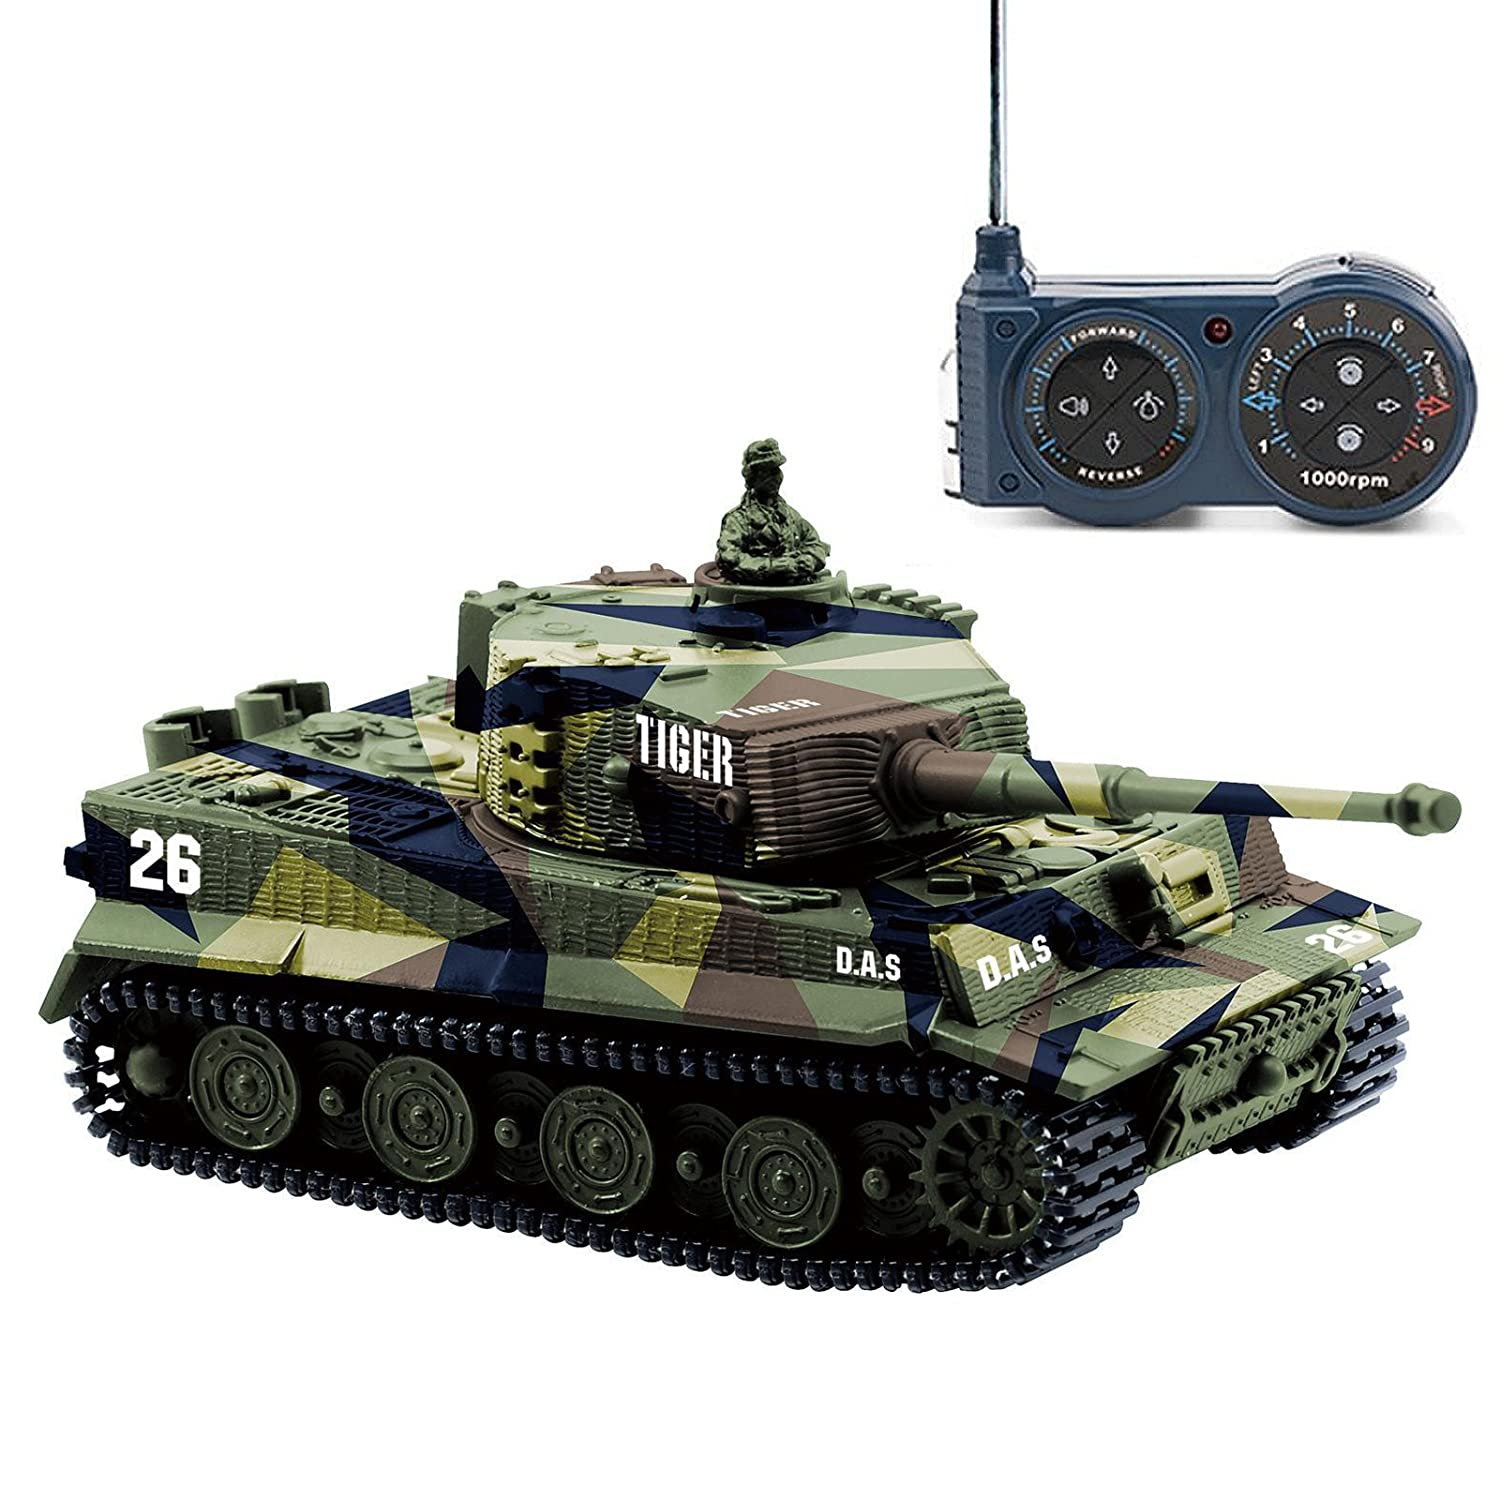 Top 9 Best Remote Control Tanks Battle Reviews in 2020 1